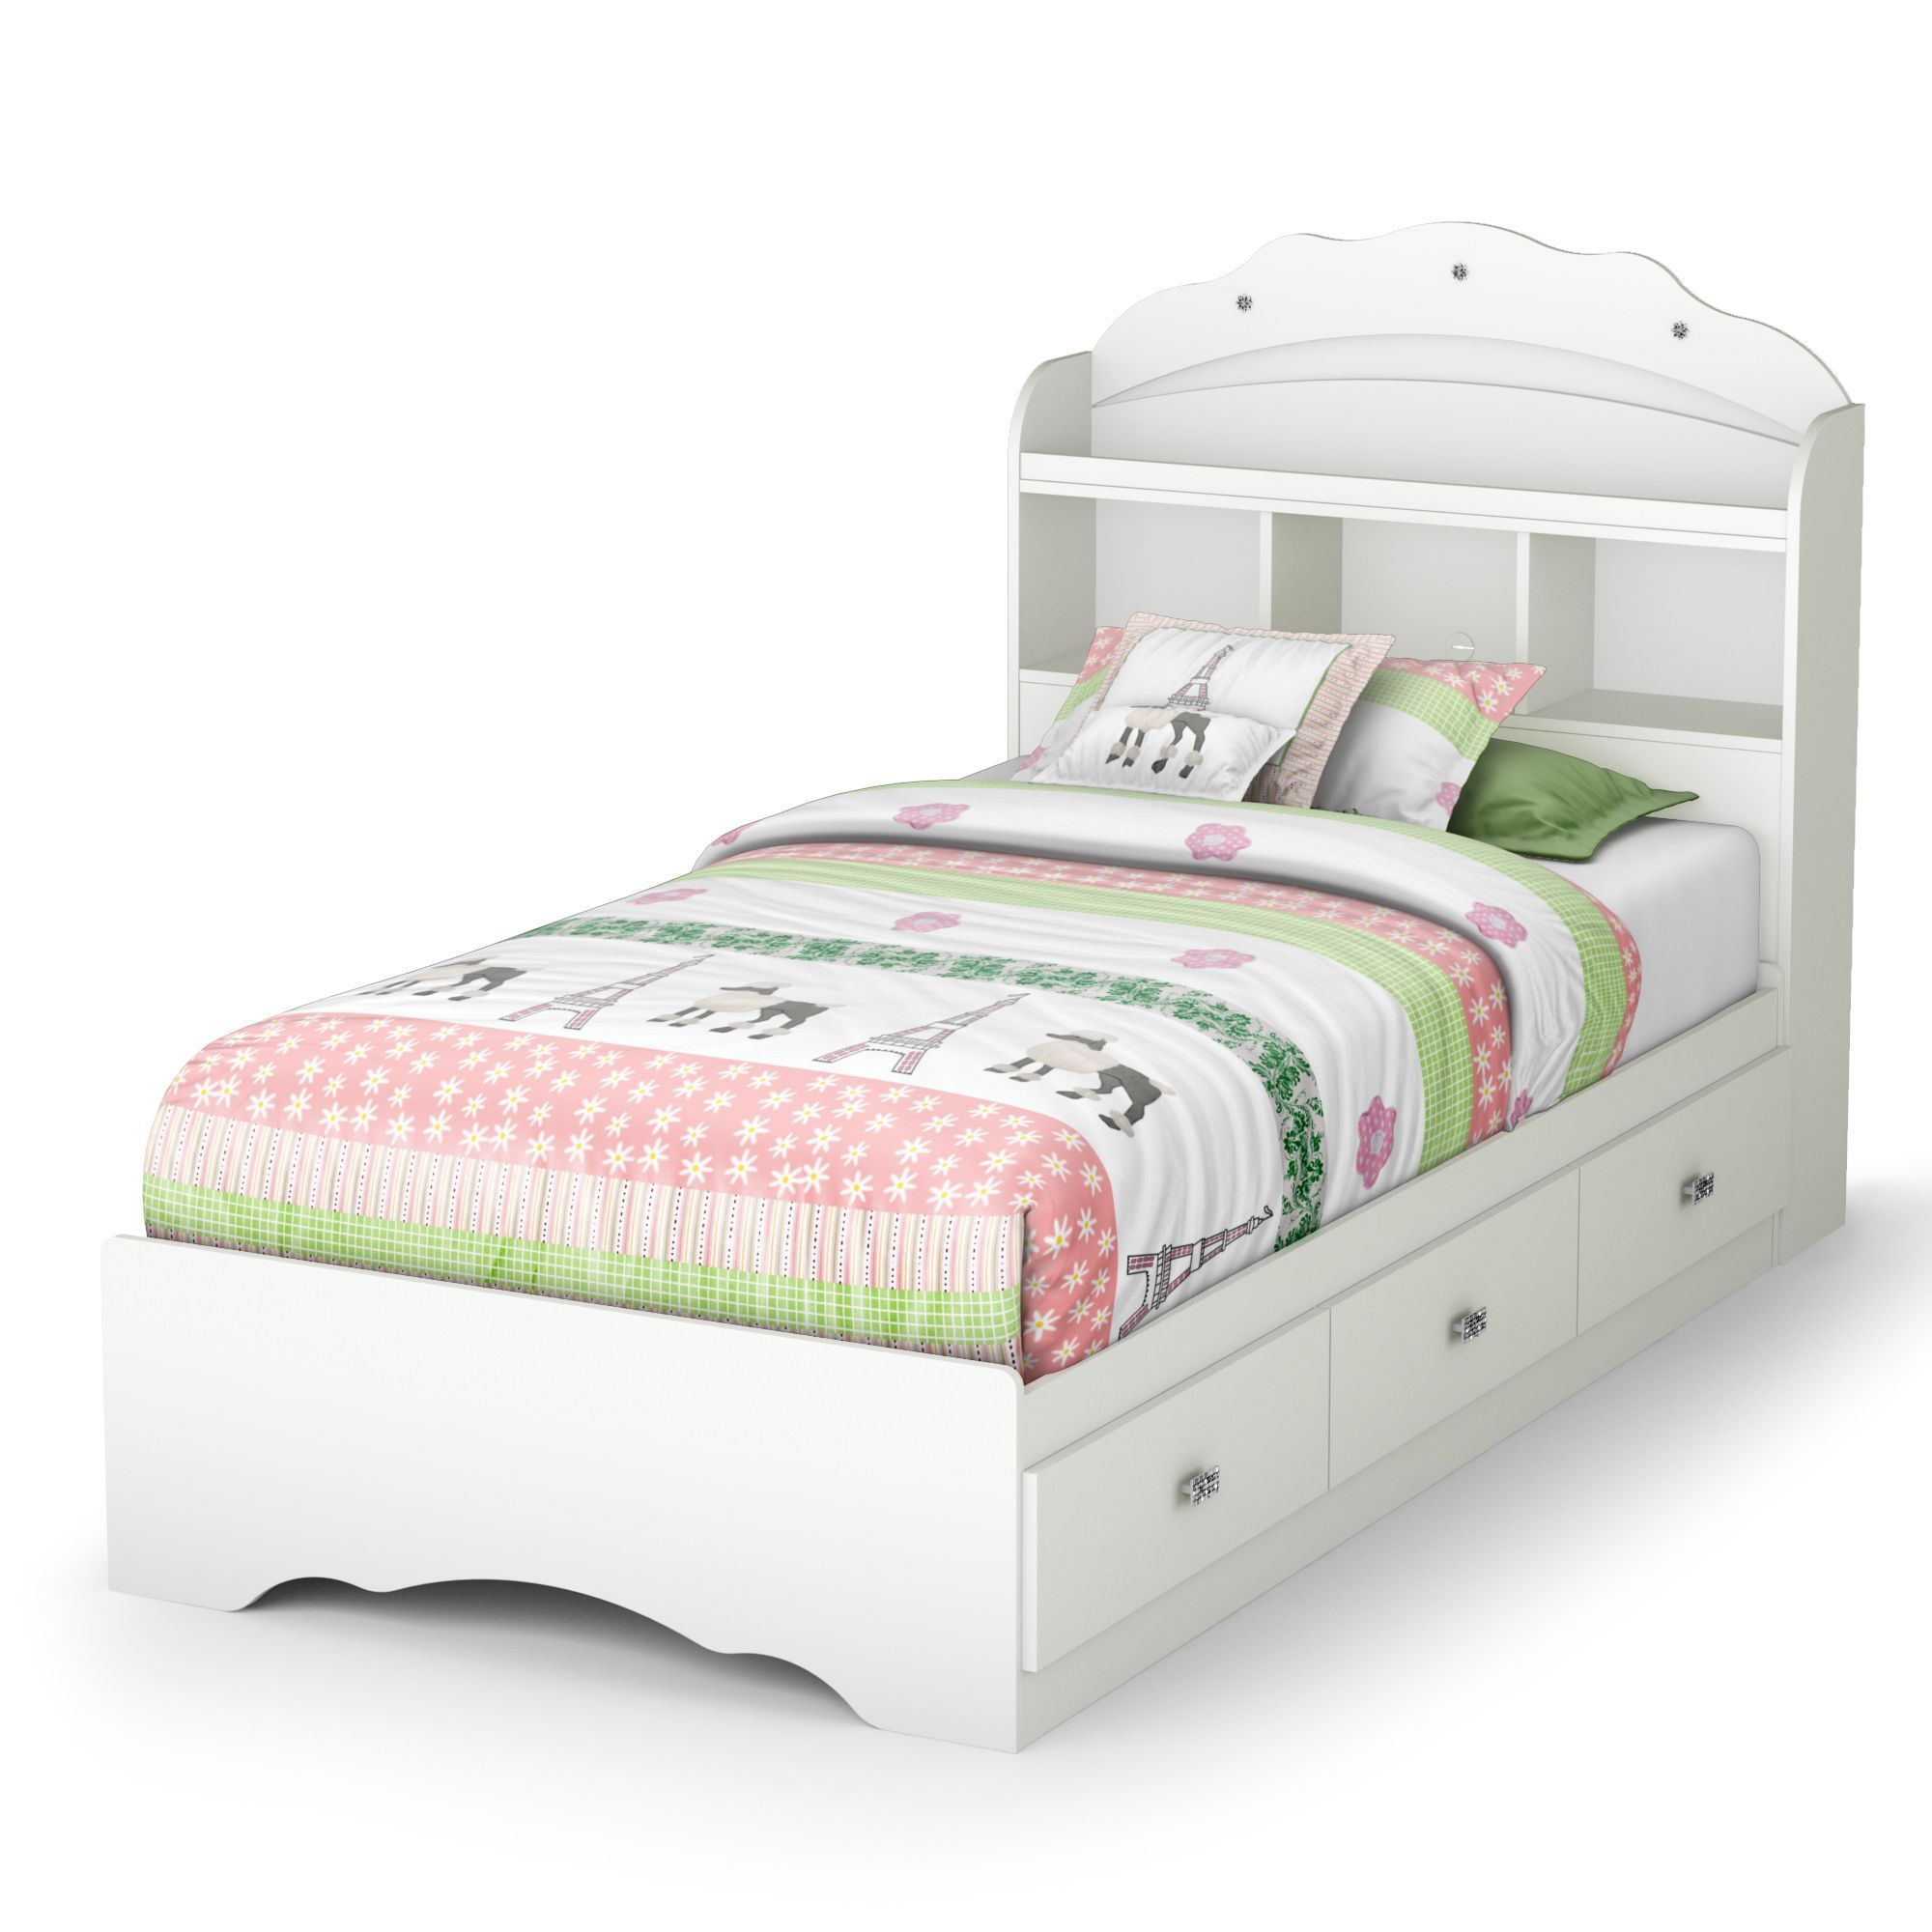 Nice Drawers Bookcase Headboard Twinbed Headboard South Shore Tiara Twin Mates Bed Bookcase Headboard Pure South Shore Tiara Twin Mates Bed Drawers baby Twin Bed Headboards